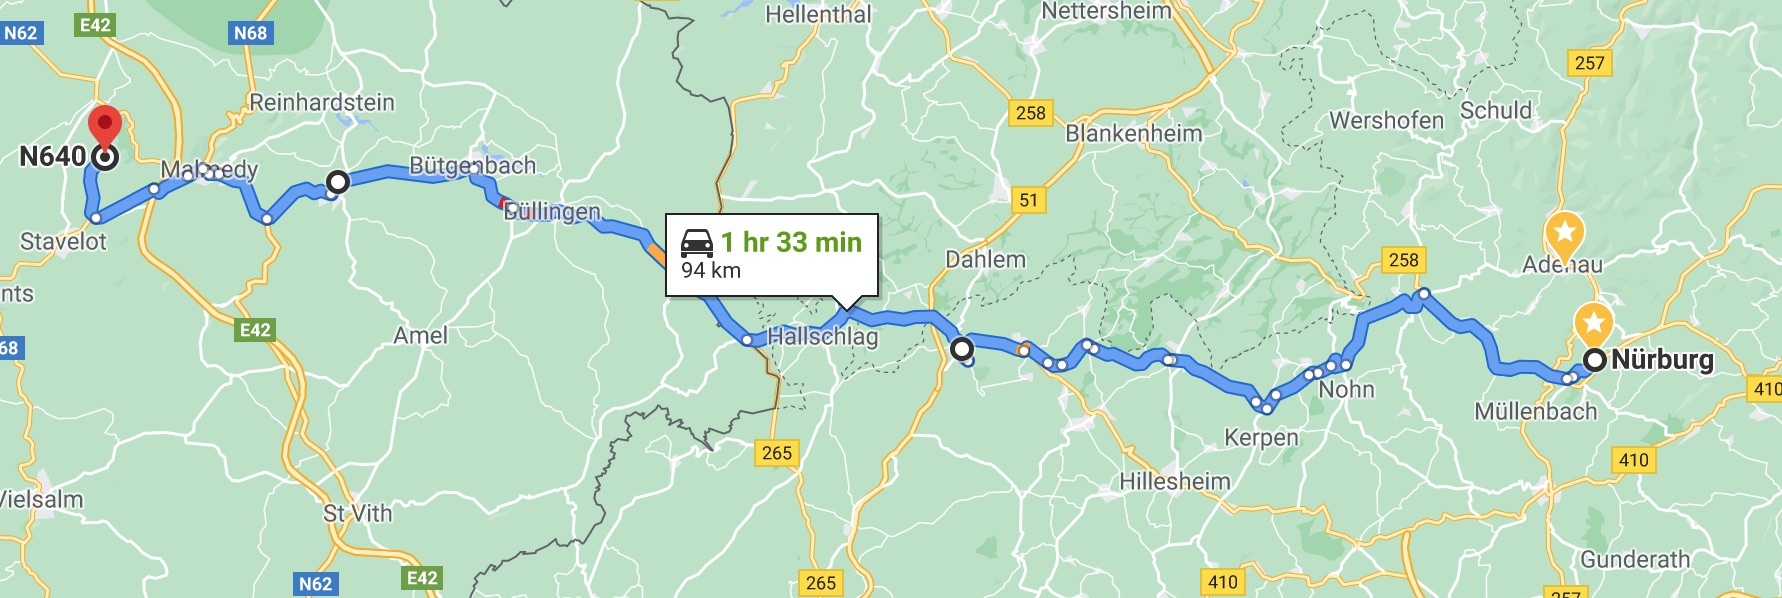 Nürburg to Spa, the shortest route